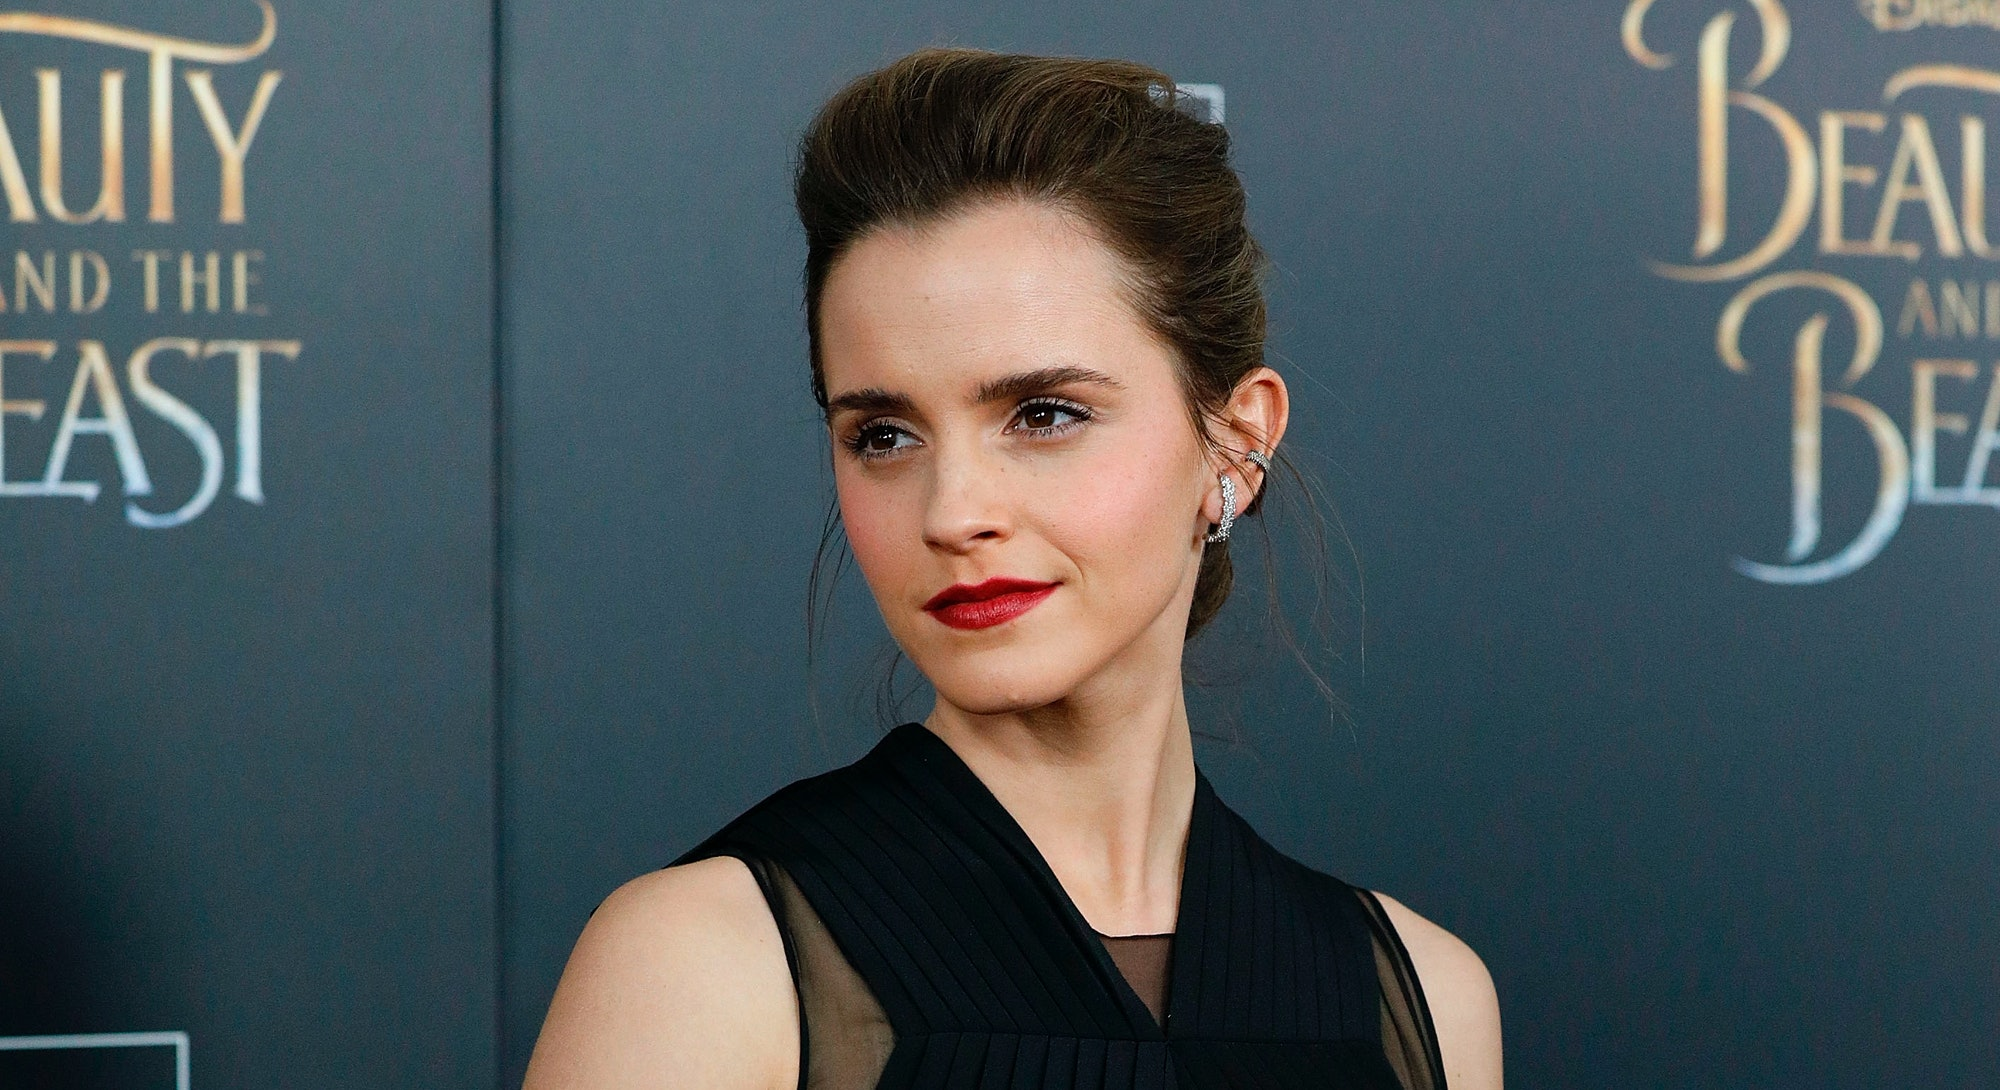 Emma Watson Beauty And The Beast Red Carpet